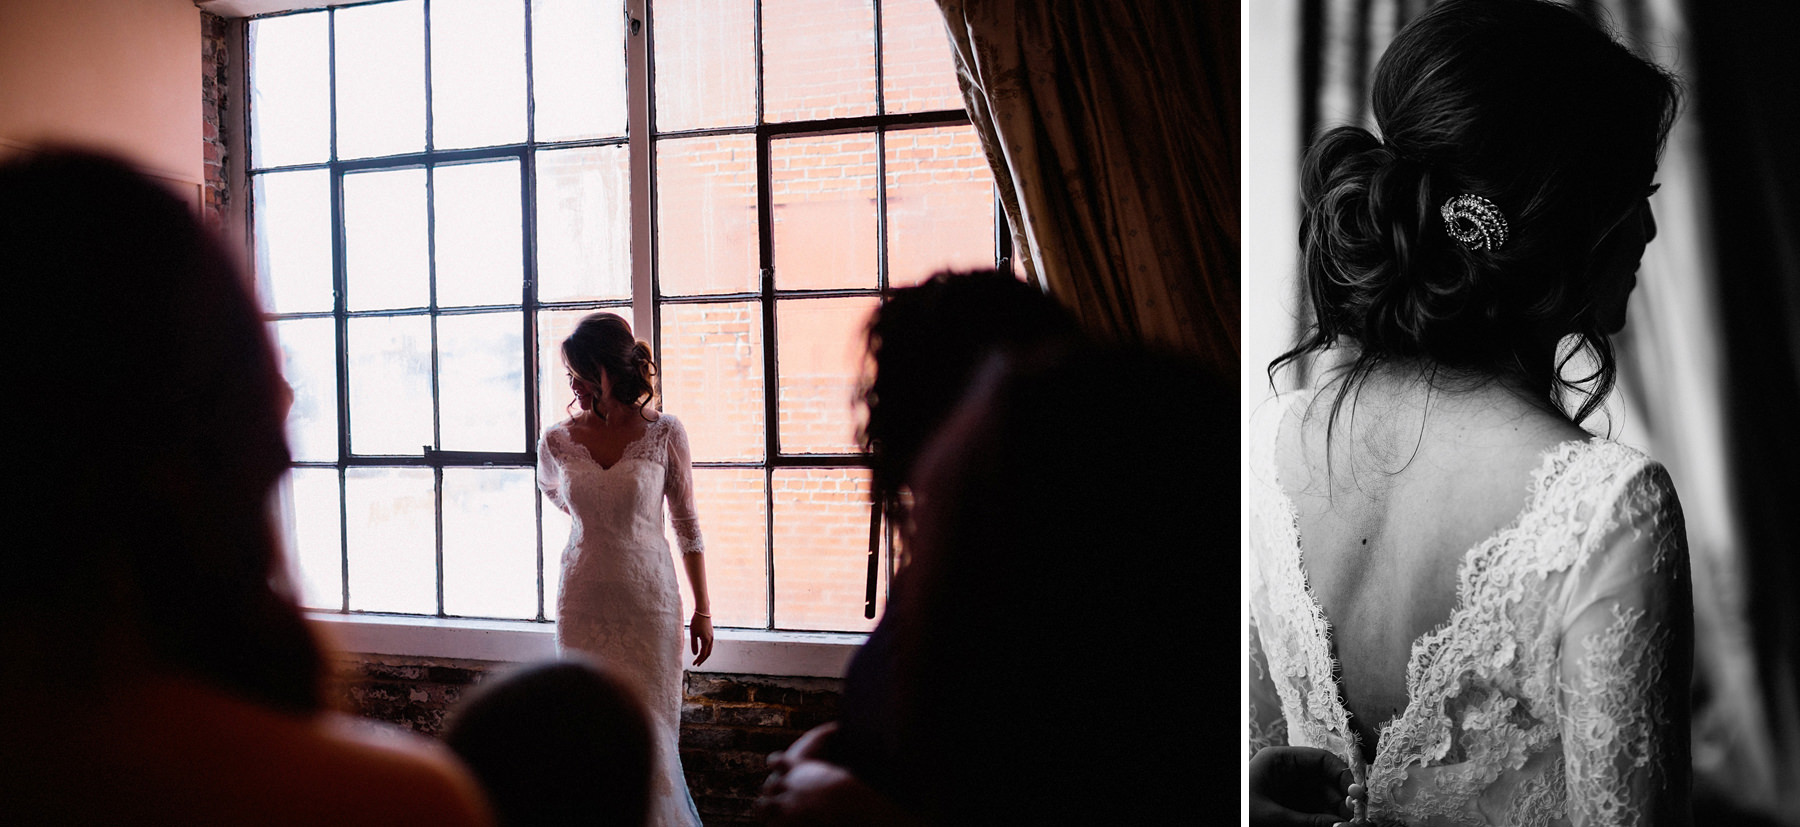 18_The Bauer Winter Wedding Kansas City, Missouri_Kindling Wedding Photography.JPG